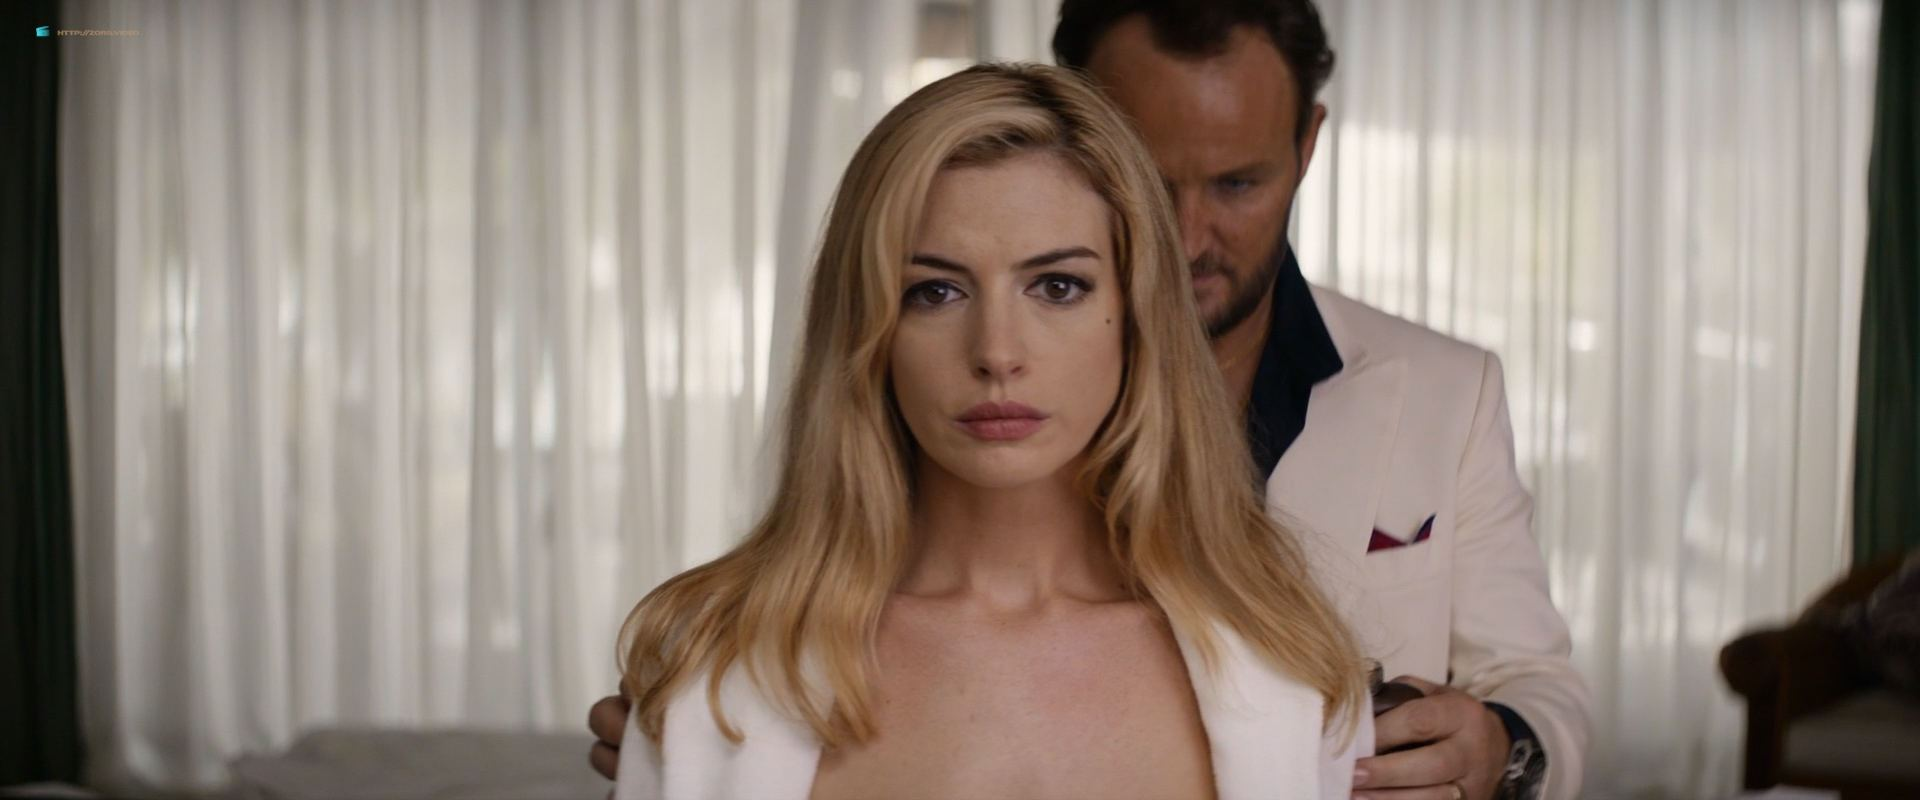 0201153347964_13_Anne-Hathaway-hot-in-sex-scene-Serenity-2019-HD-1080p-BluRay-00004.jpg